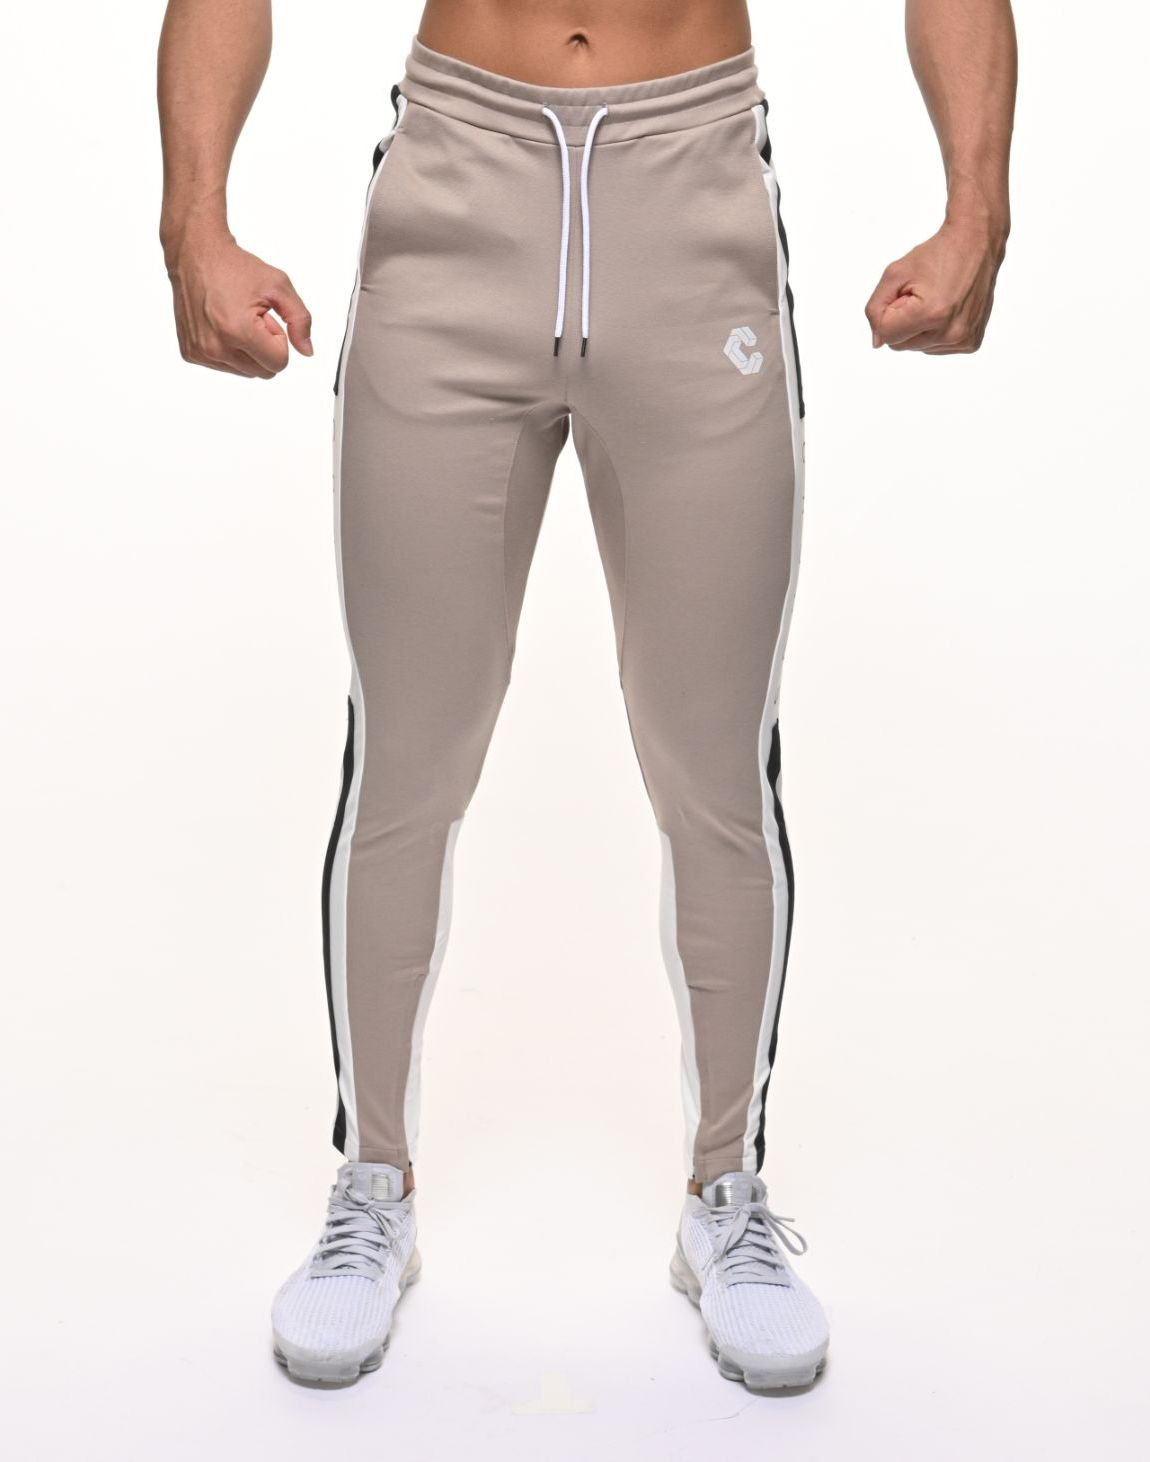 <img class='new_mark_img1' src='https://img.shop-pro.jp/img/new/icons1.gif' style='border:none;display:inline;margin:0px;padding:0px;width:auto;' />CRONOS SIDE THICK TAPE PANTS【BEIGE】